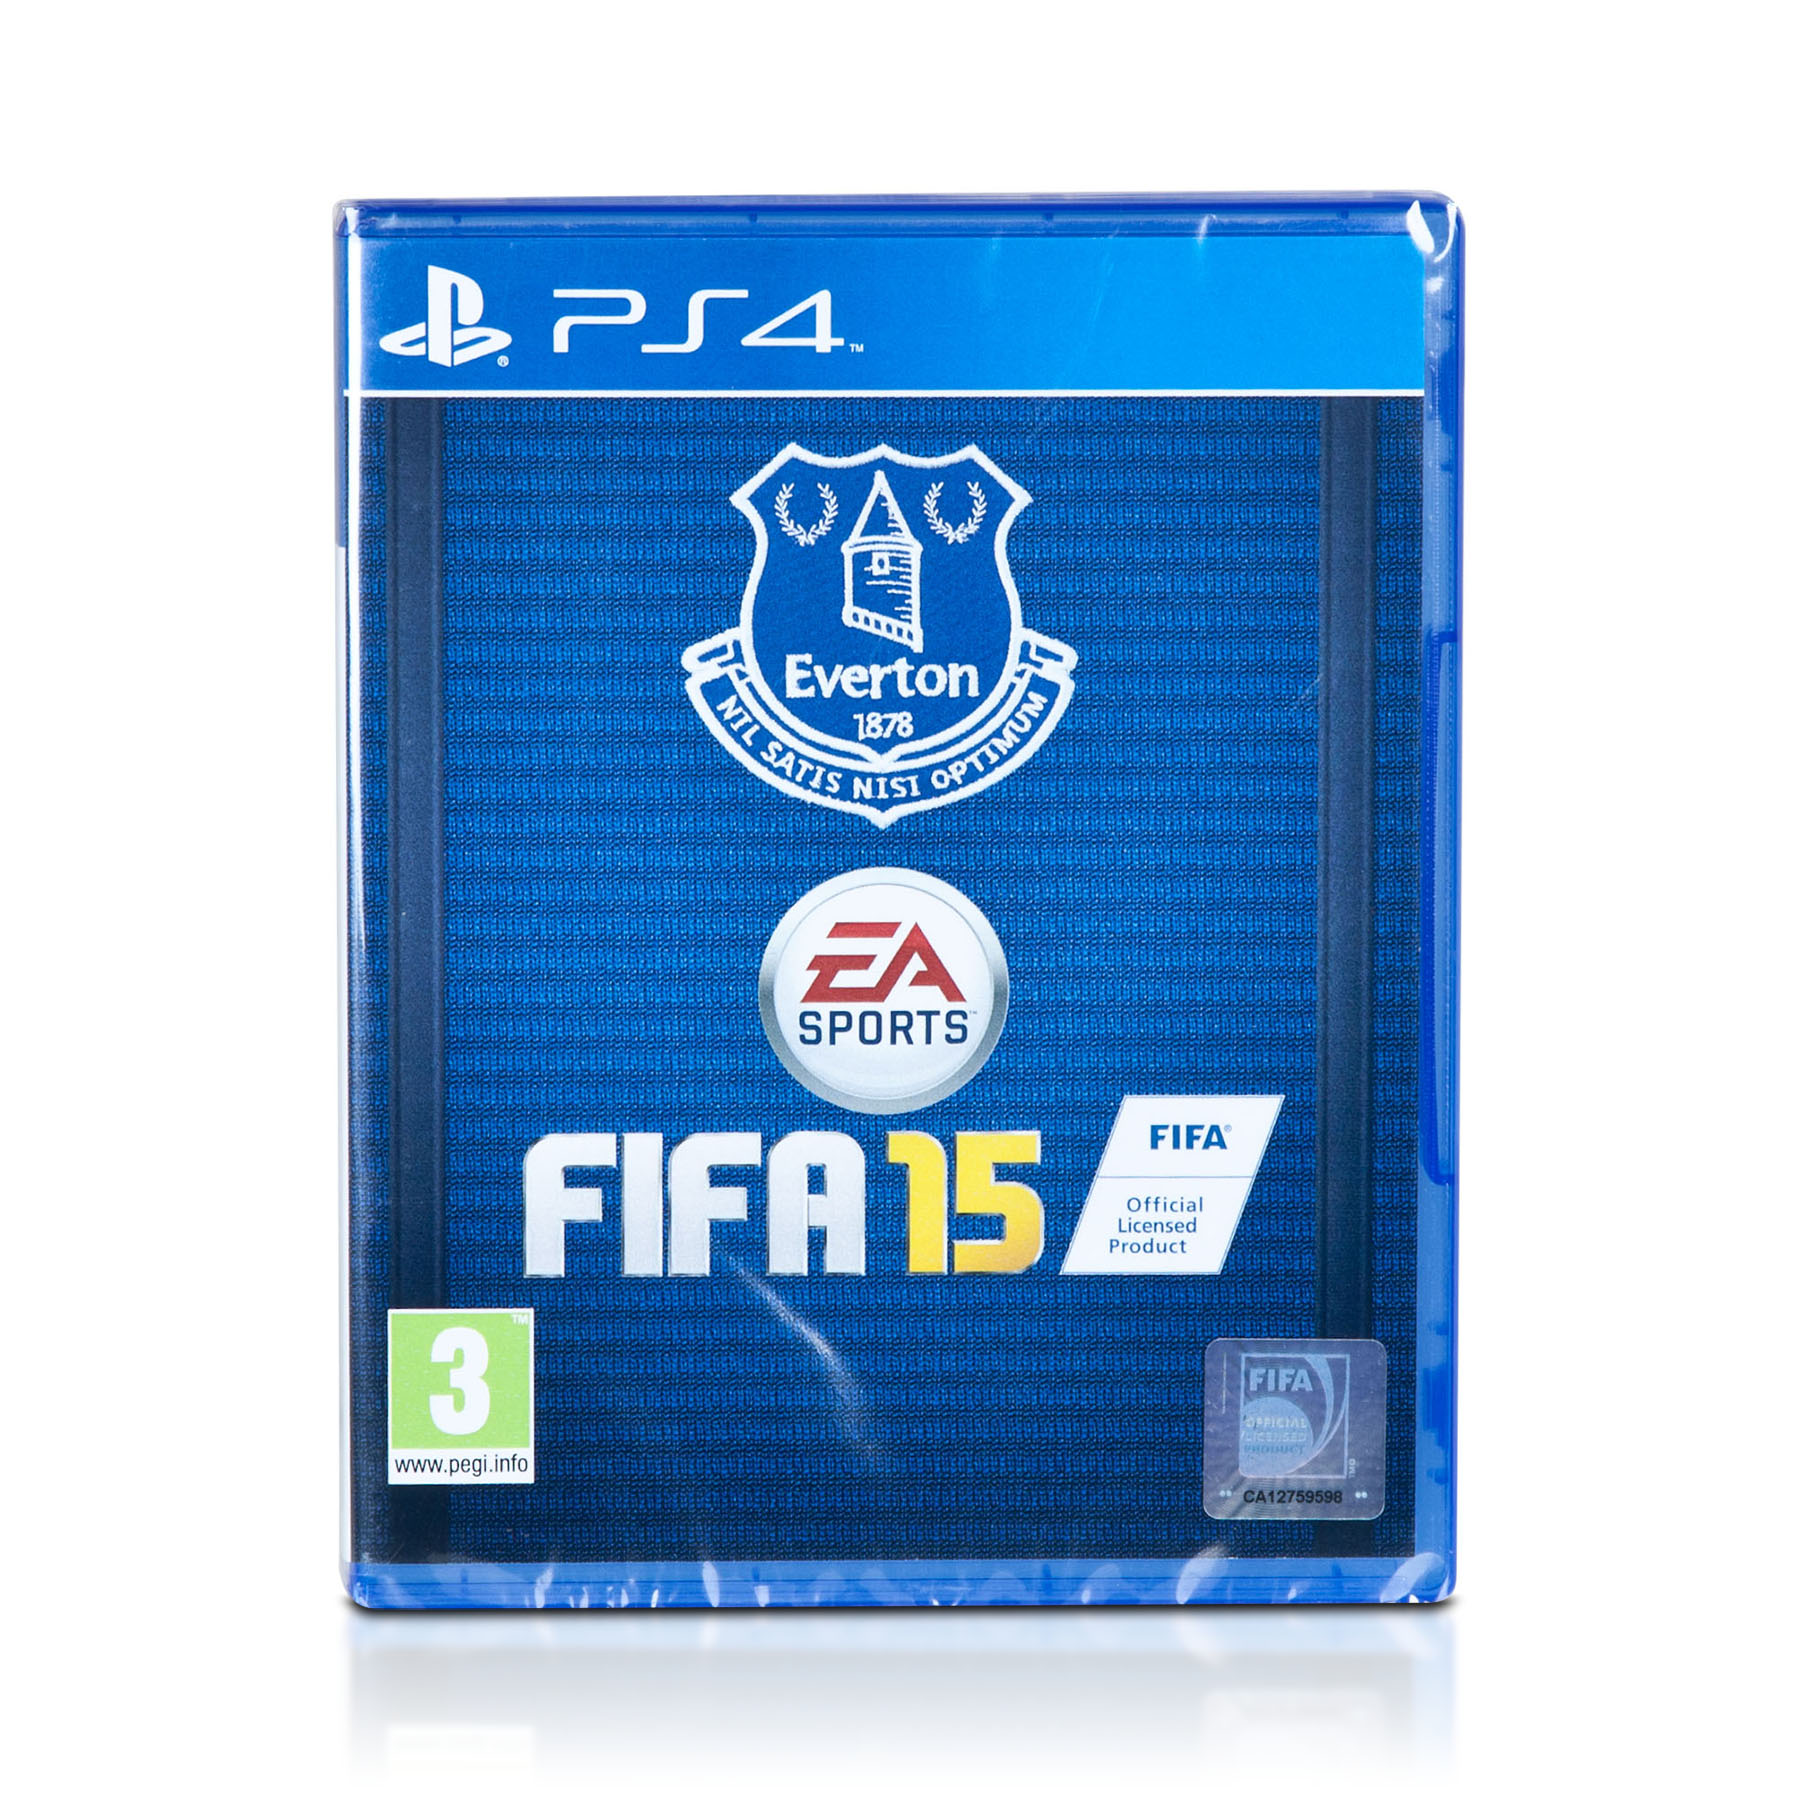 Everton Fifa 15 PS4 - Exclusive Cover